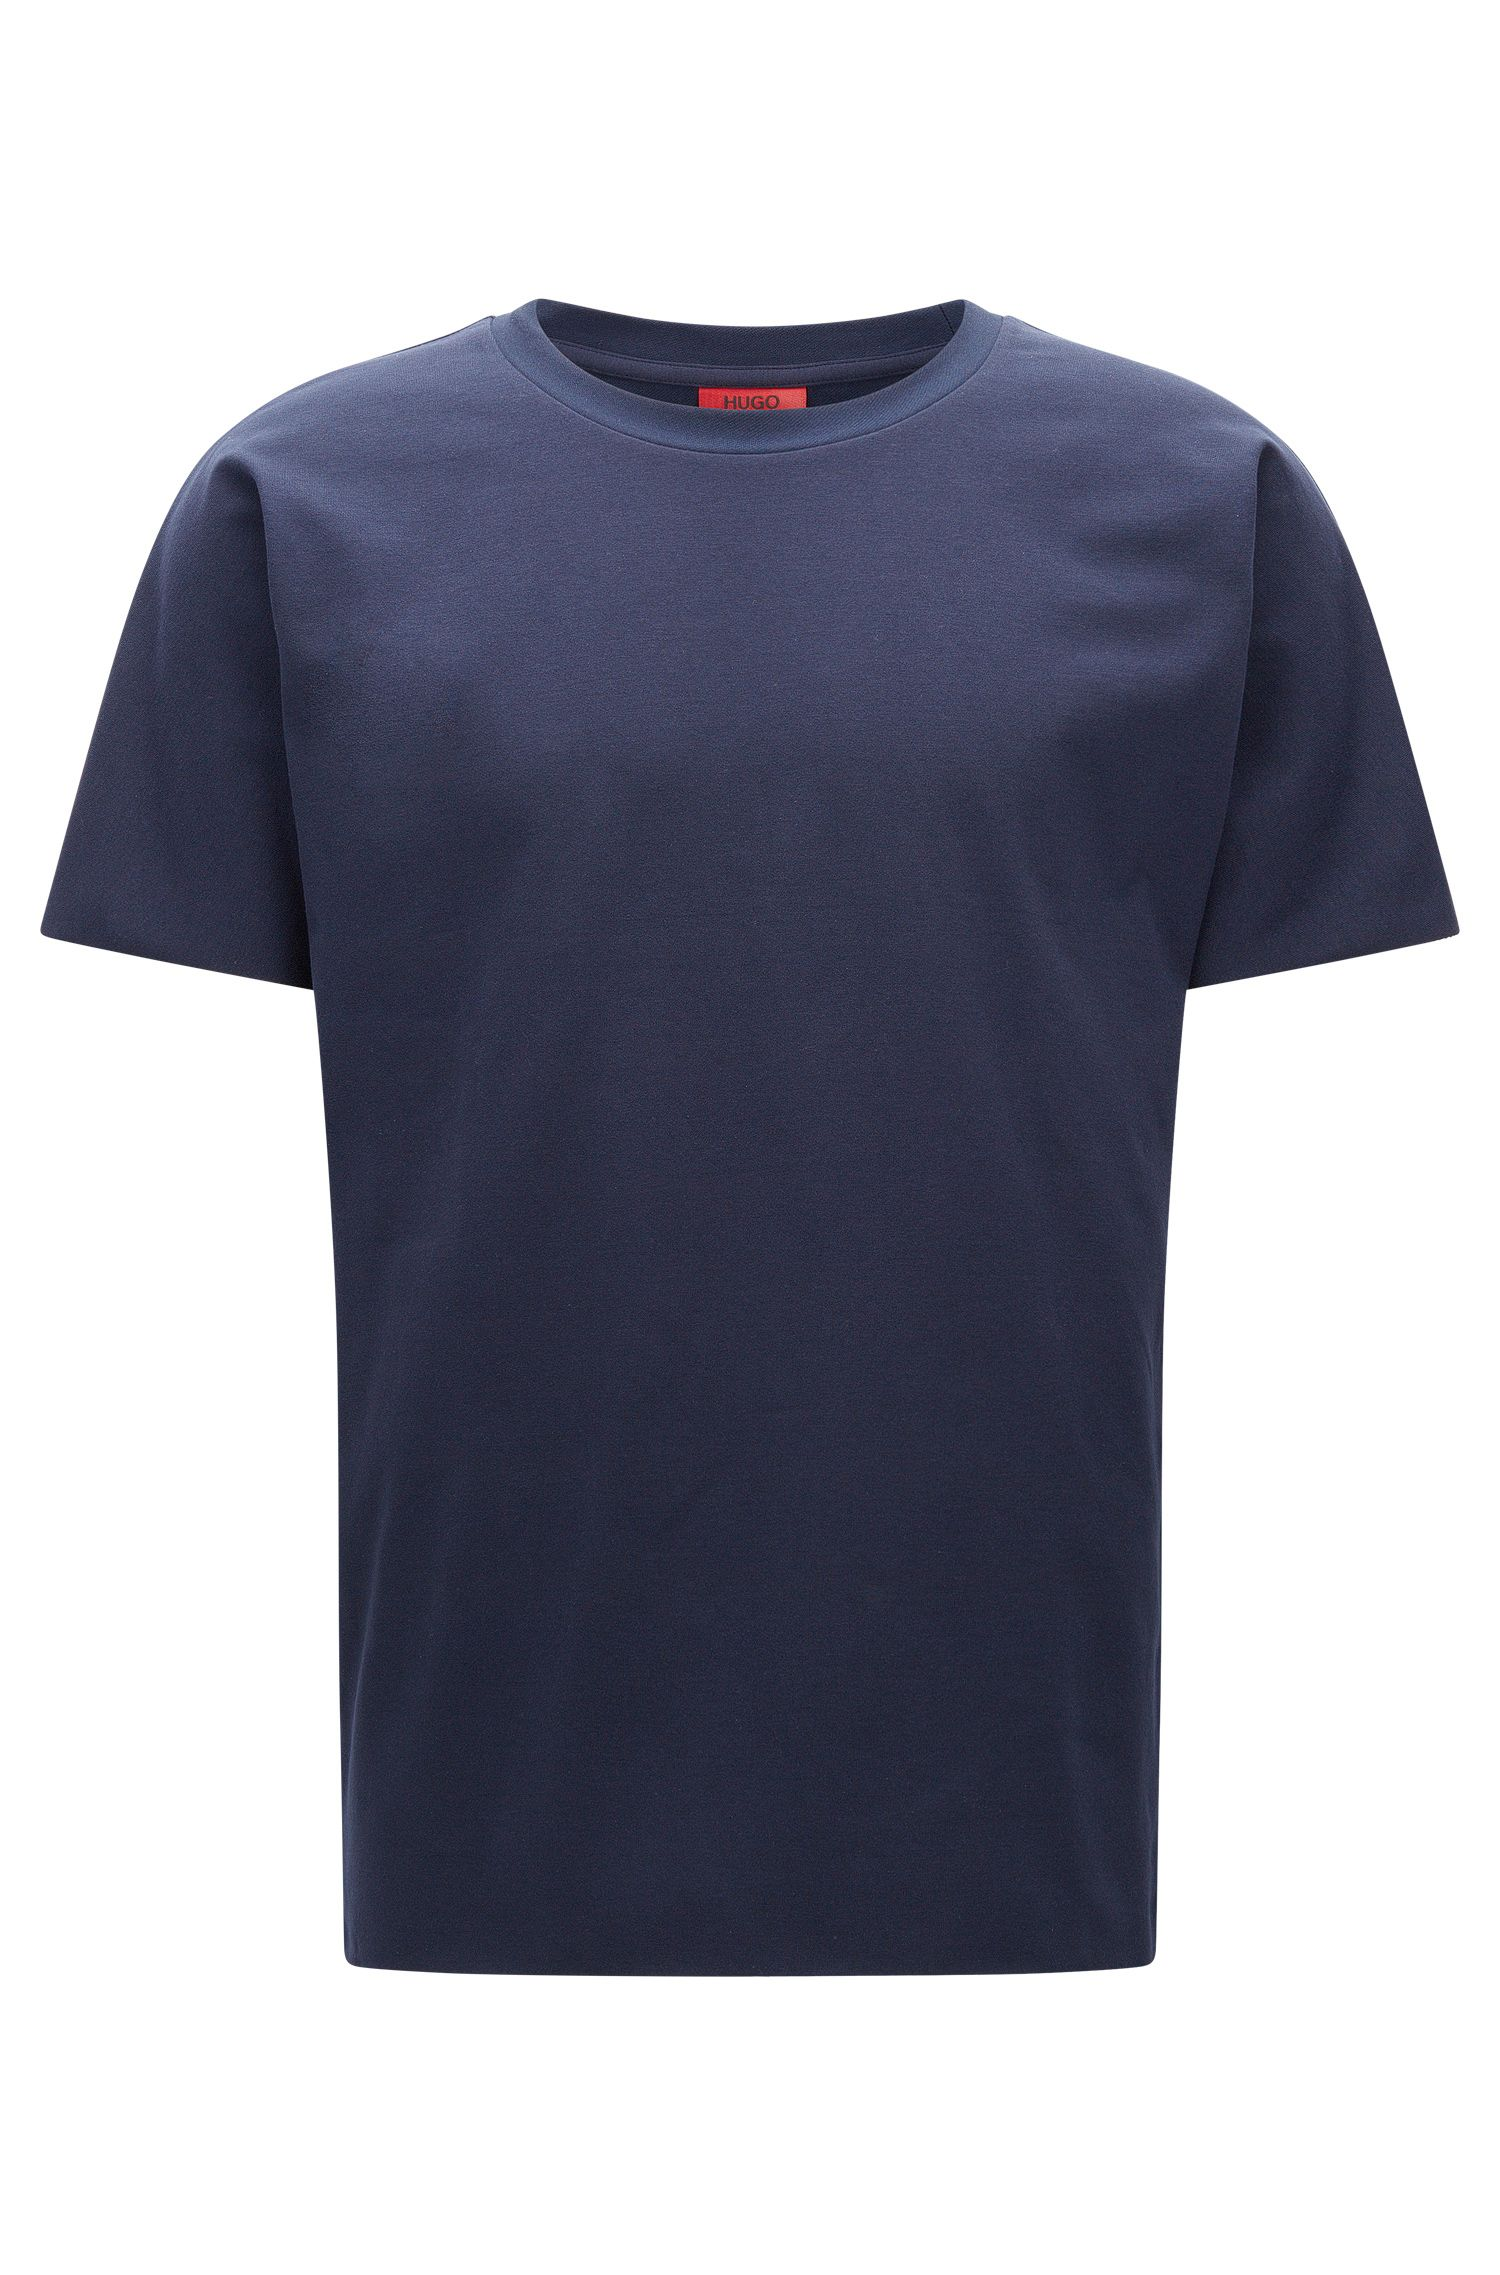 T-shirt relaxed fit in twill french terry